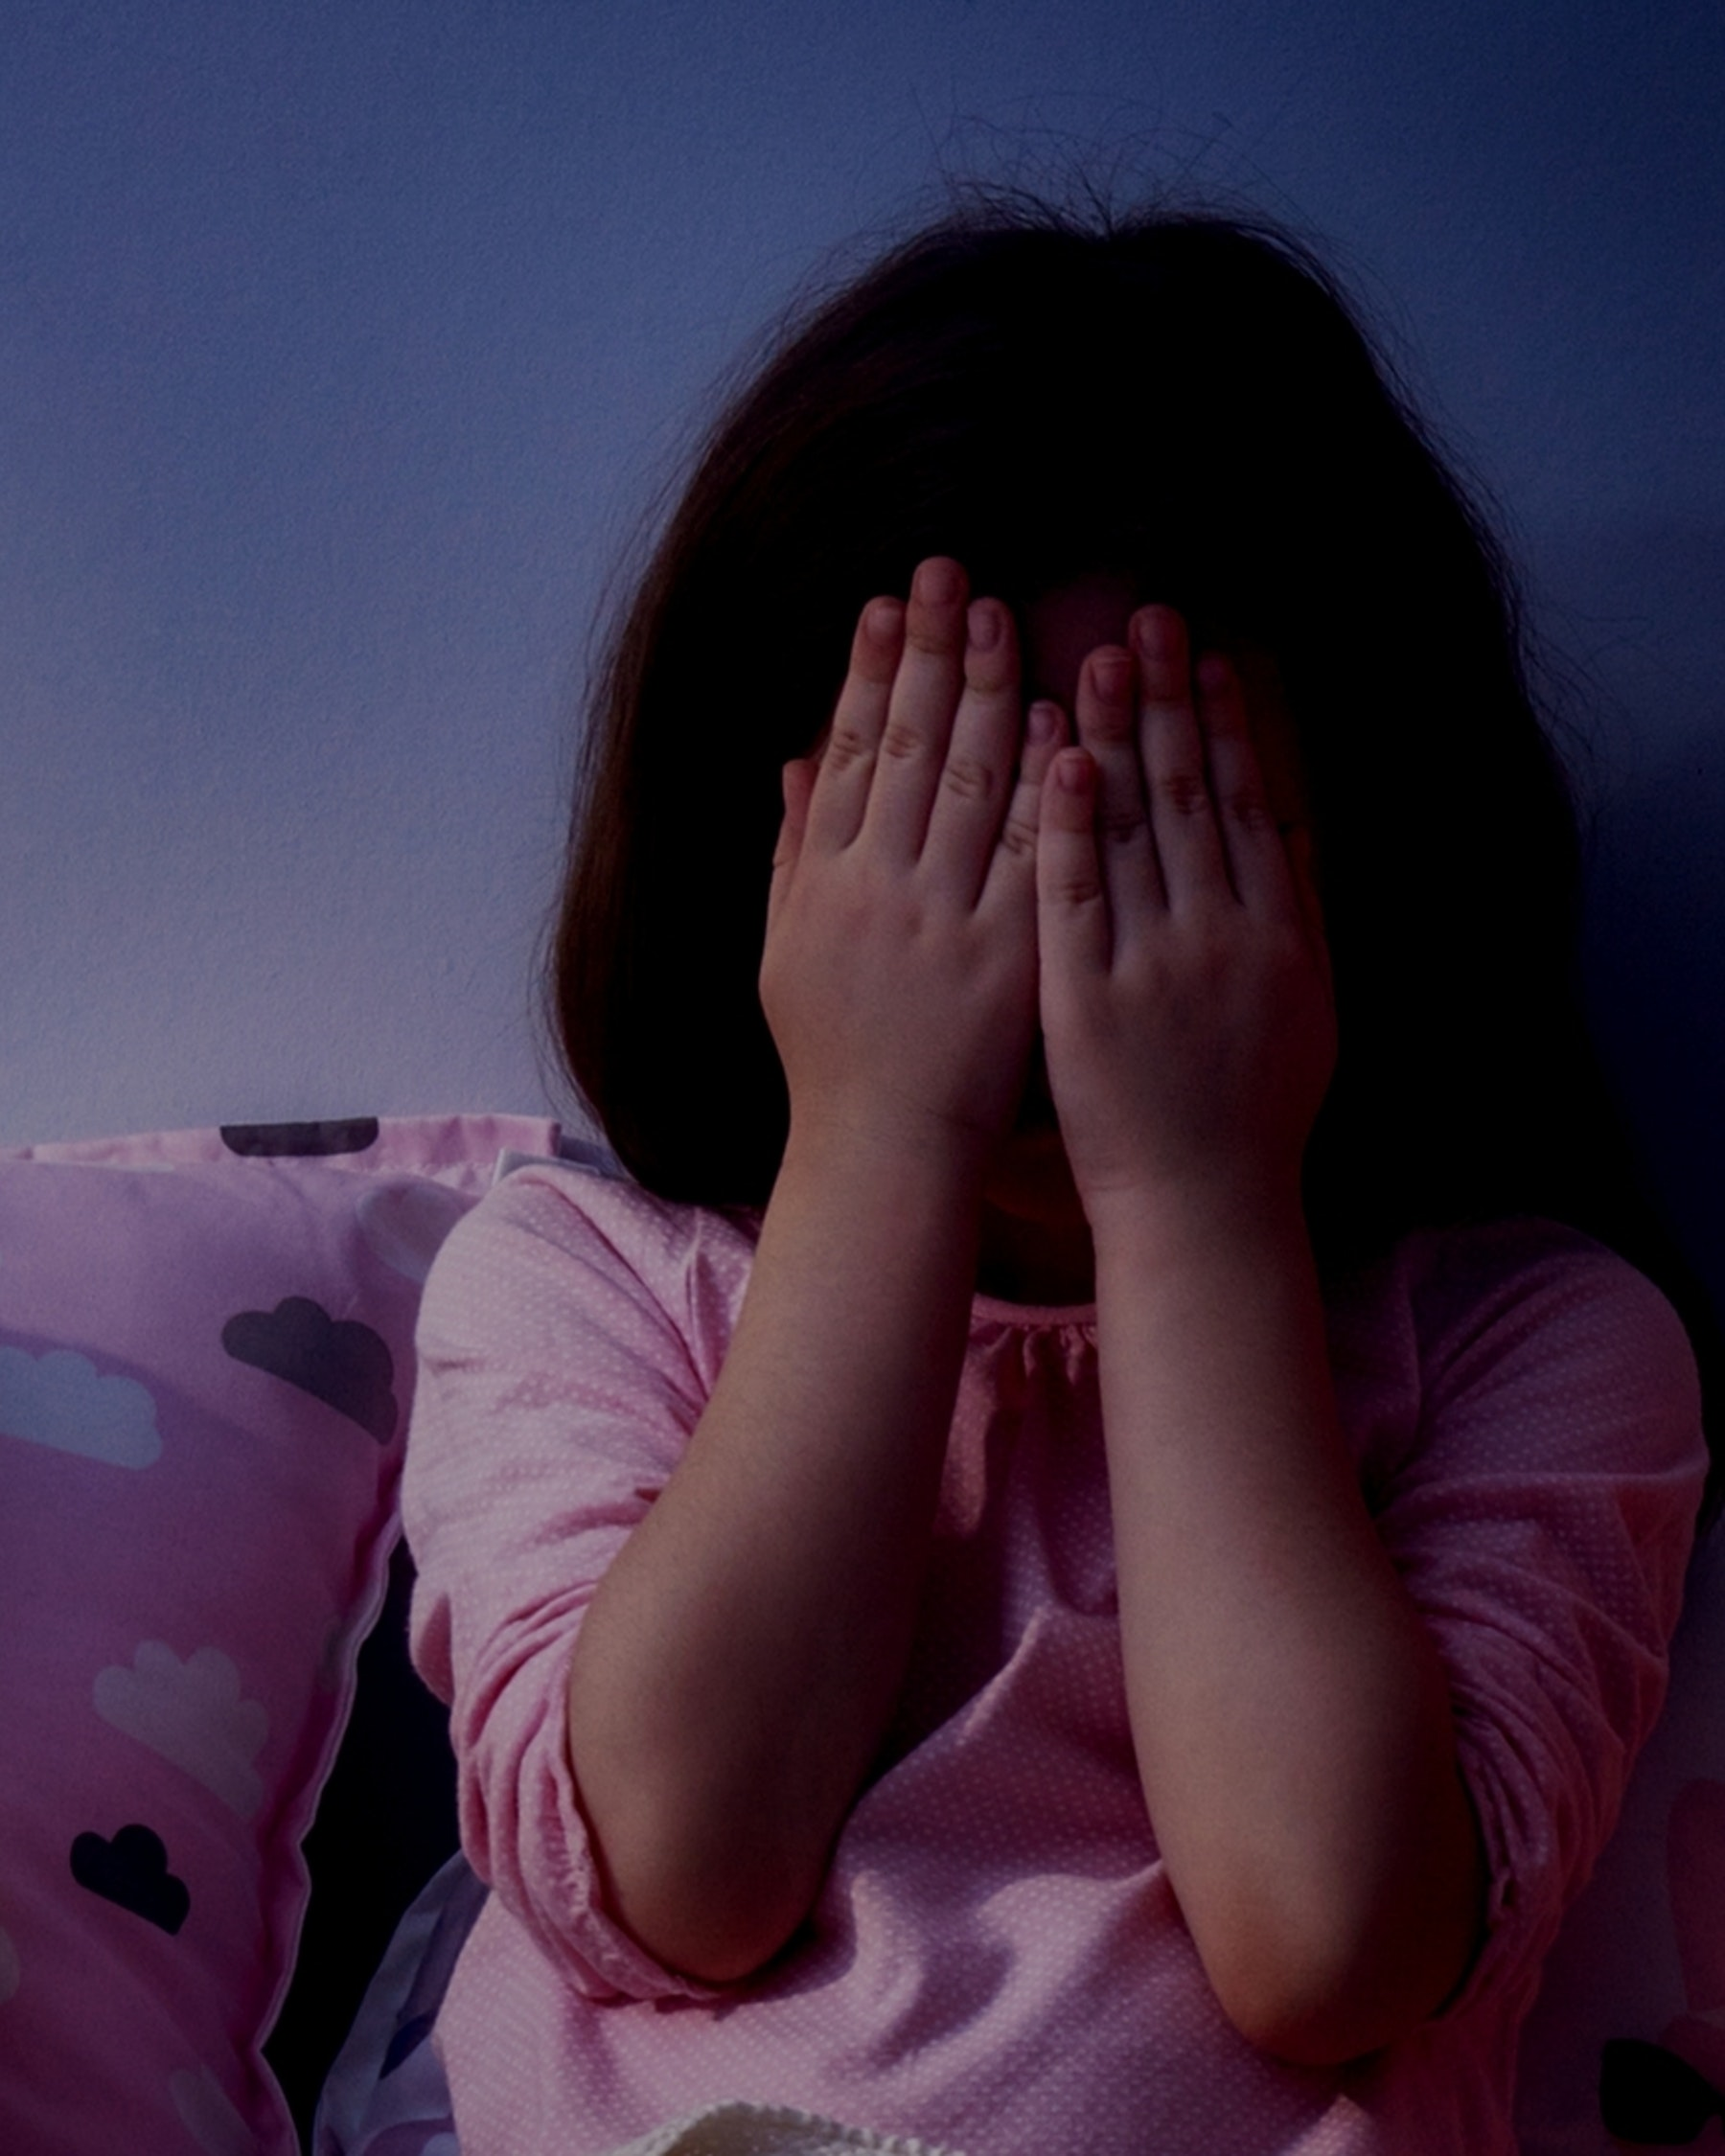 How To Stop Having Nightmares – Why Do I Keep Having Nightmares?